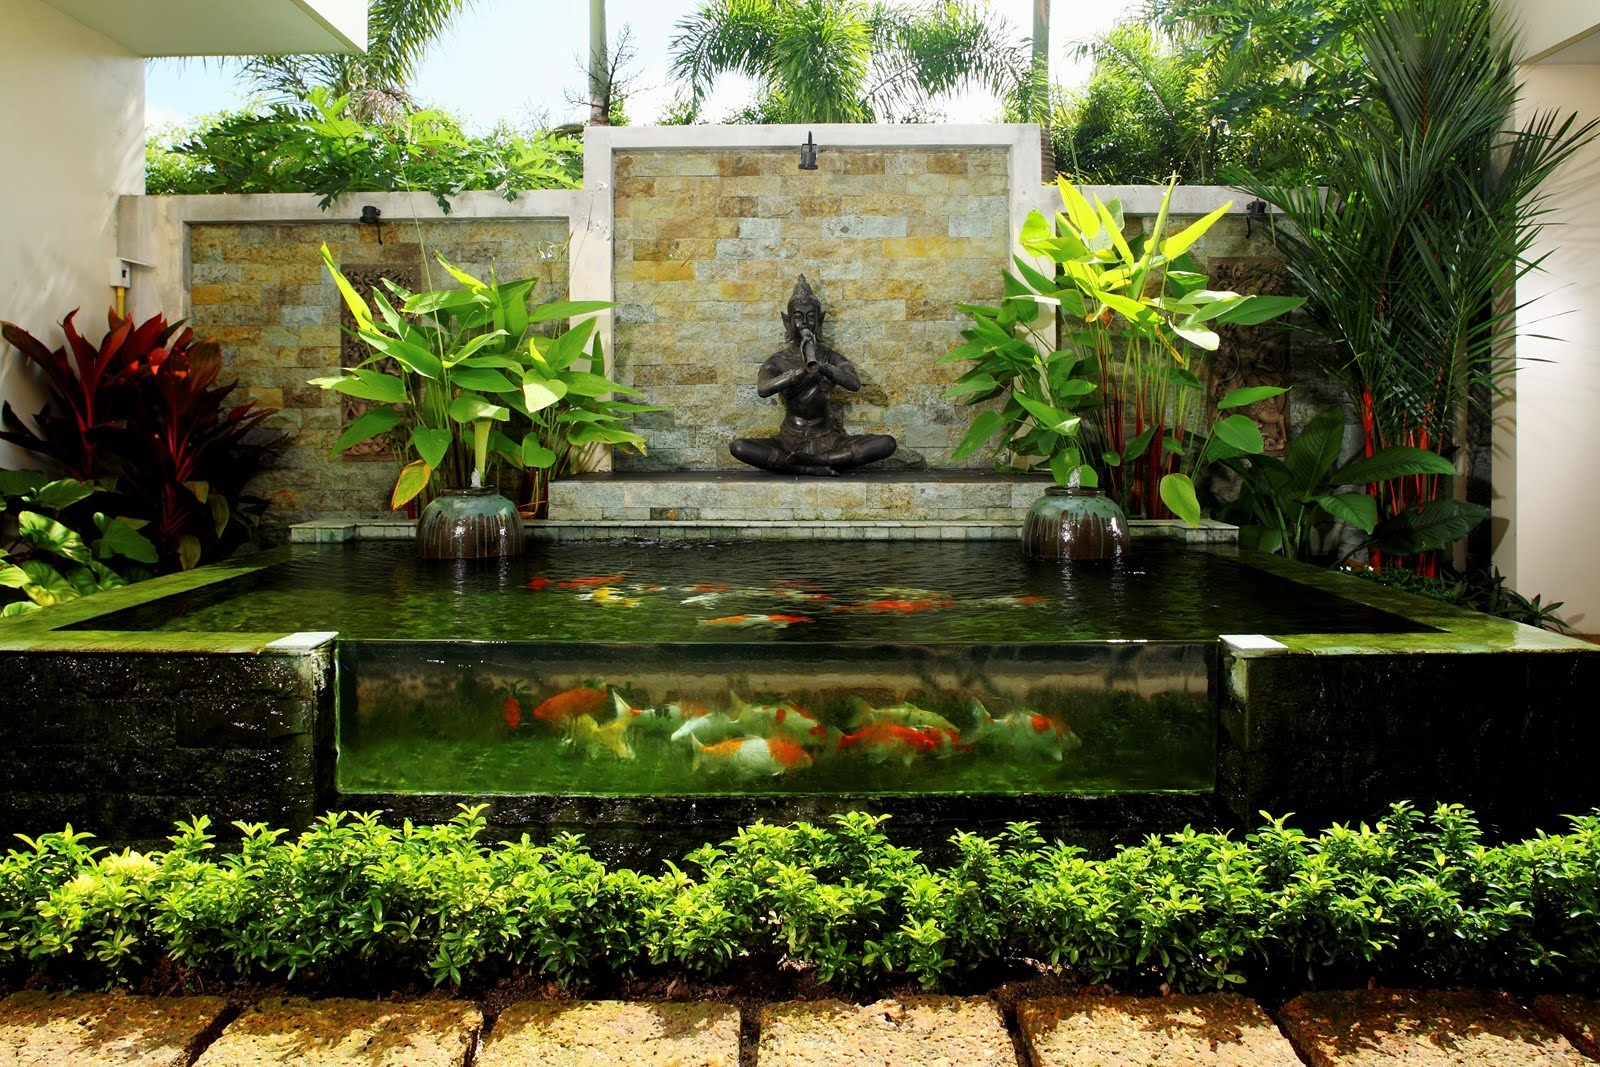 Koi pond design be equipped pictures of garden ponds be equipped outdoor water ponds be equipped how to build a fish pond with a liner